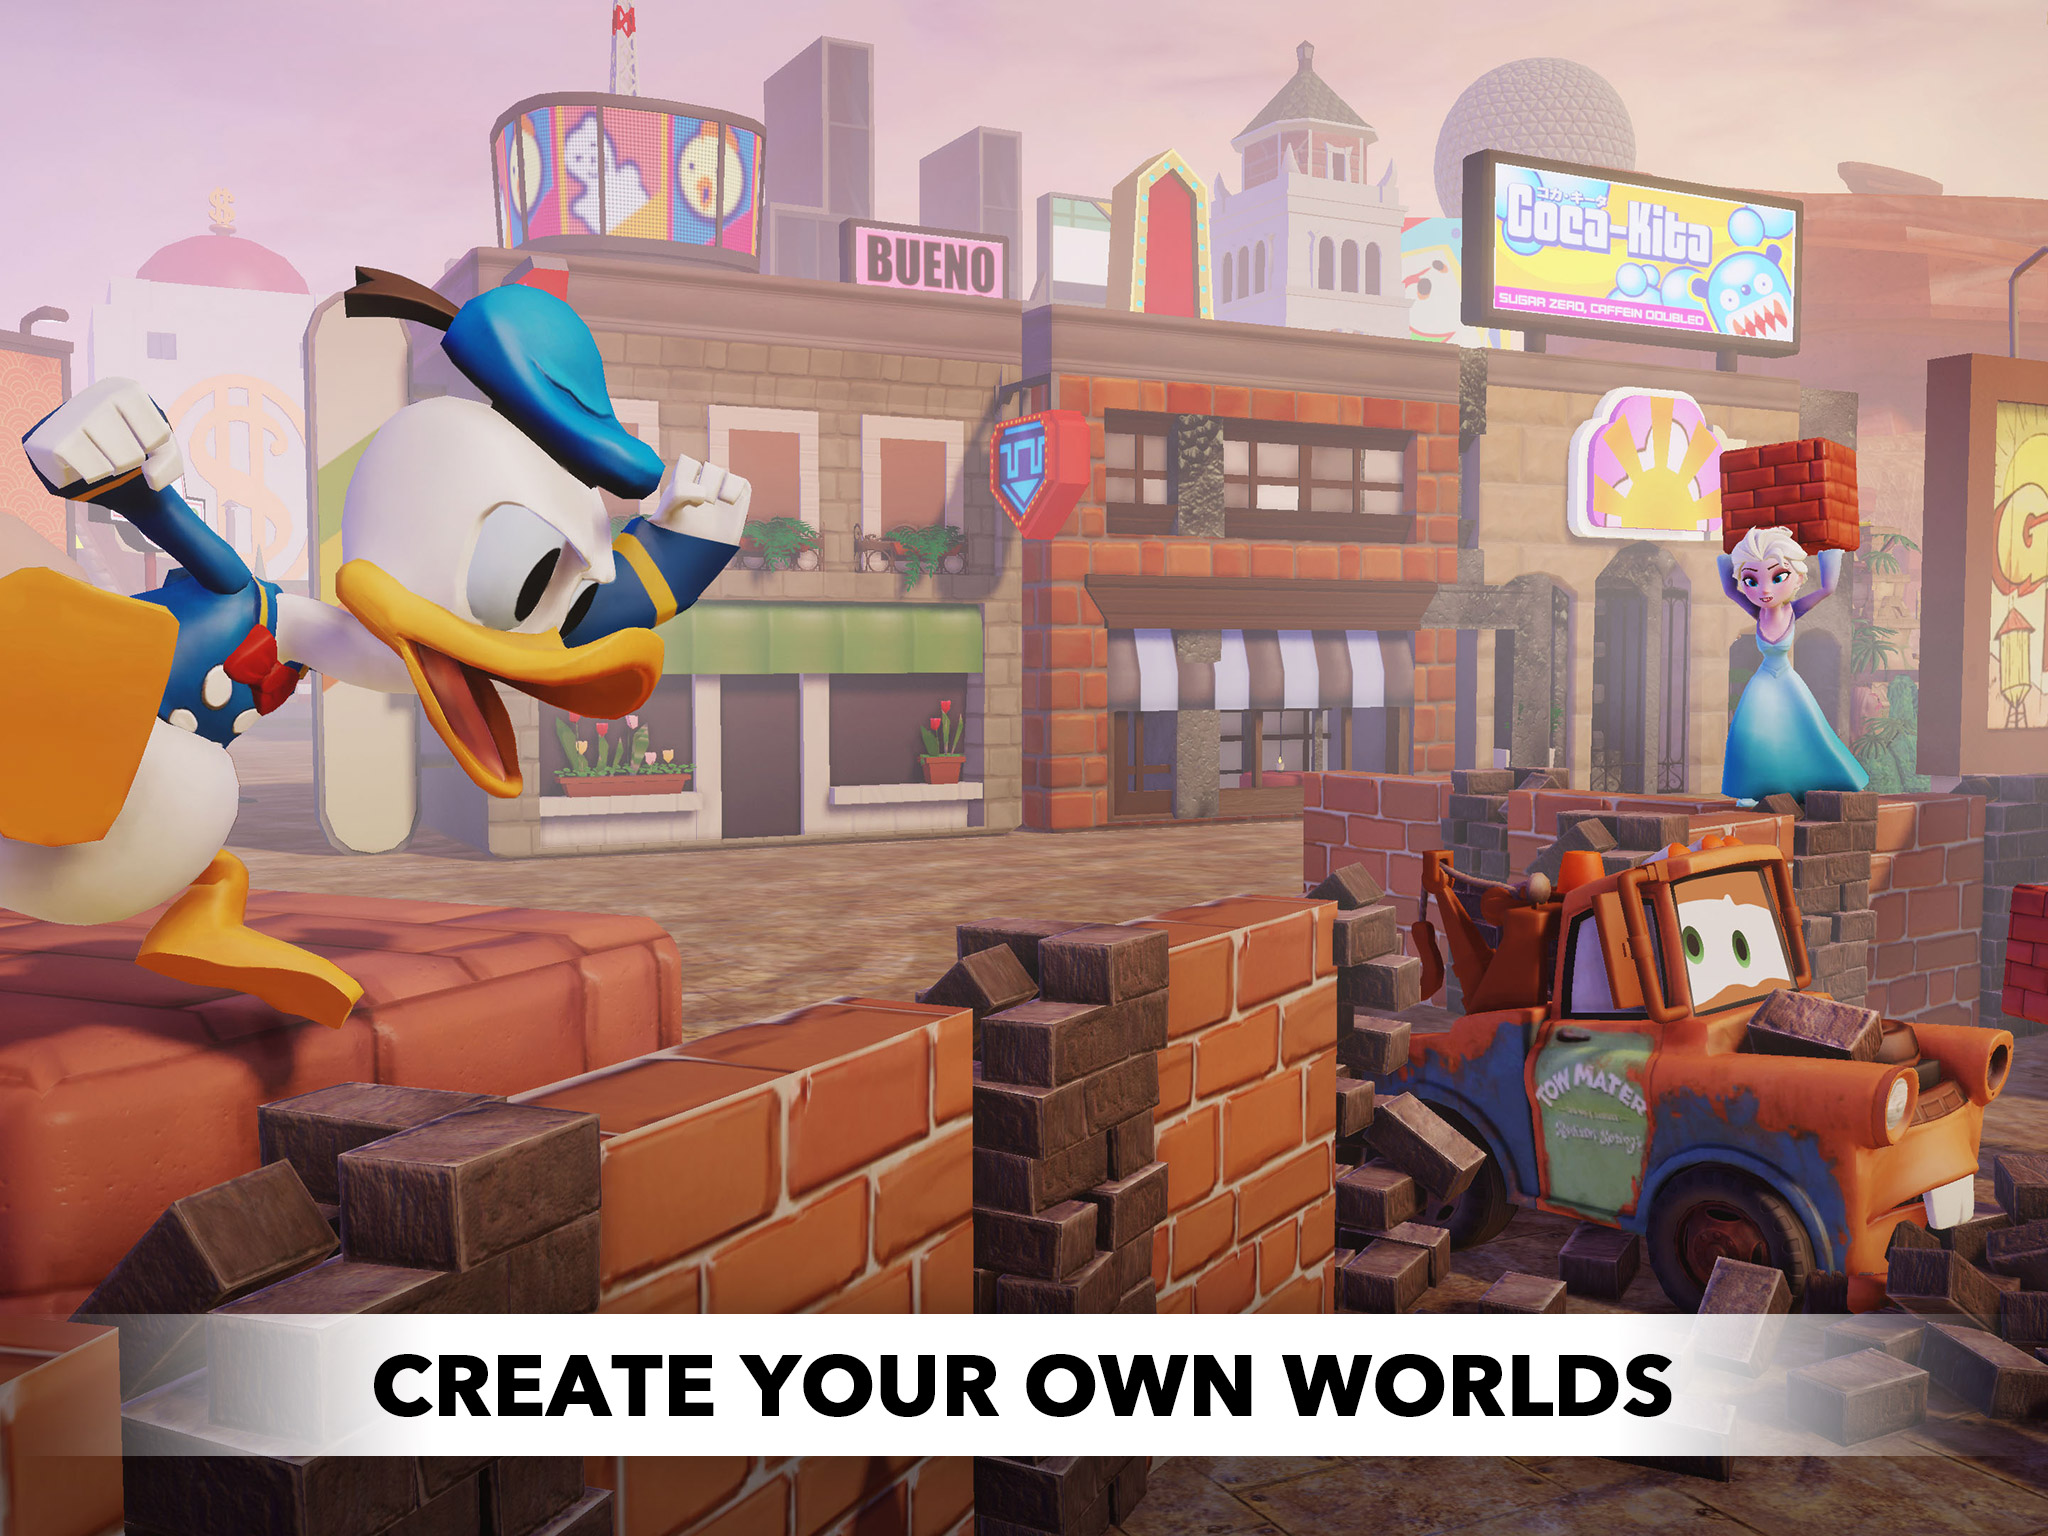 Powered by Apple's Metal API, Disney Infinity: Toy Box 2.0 launches for iPhone and iPad